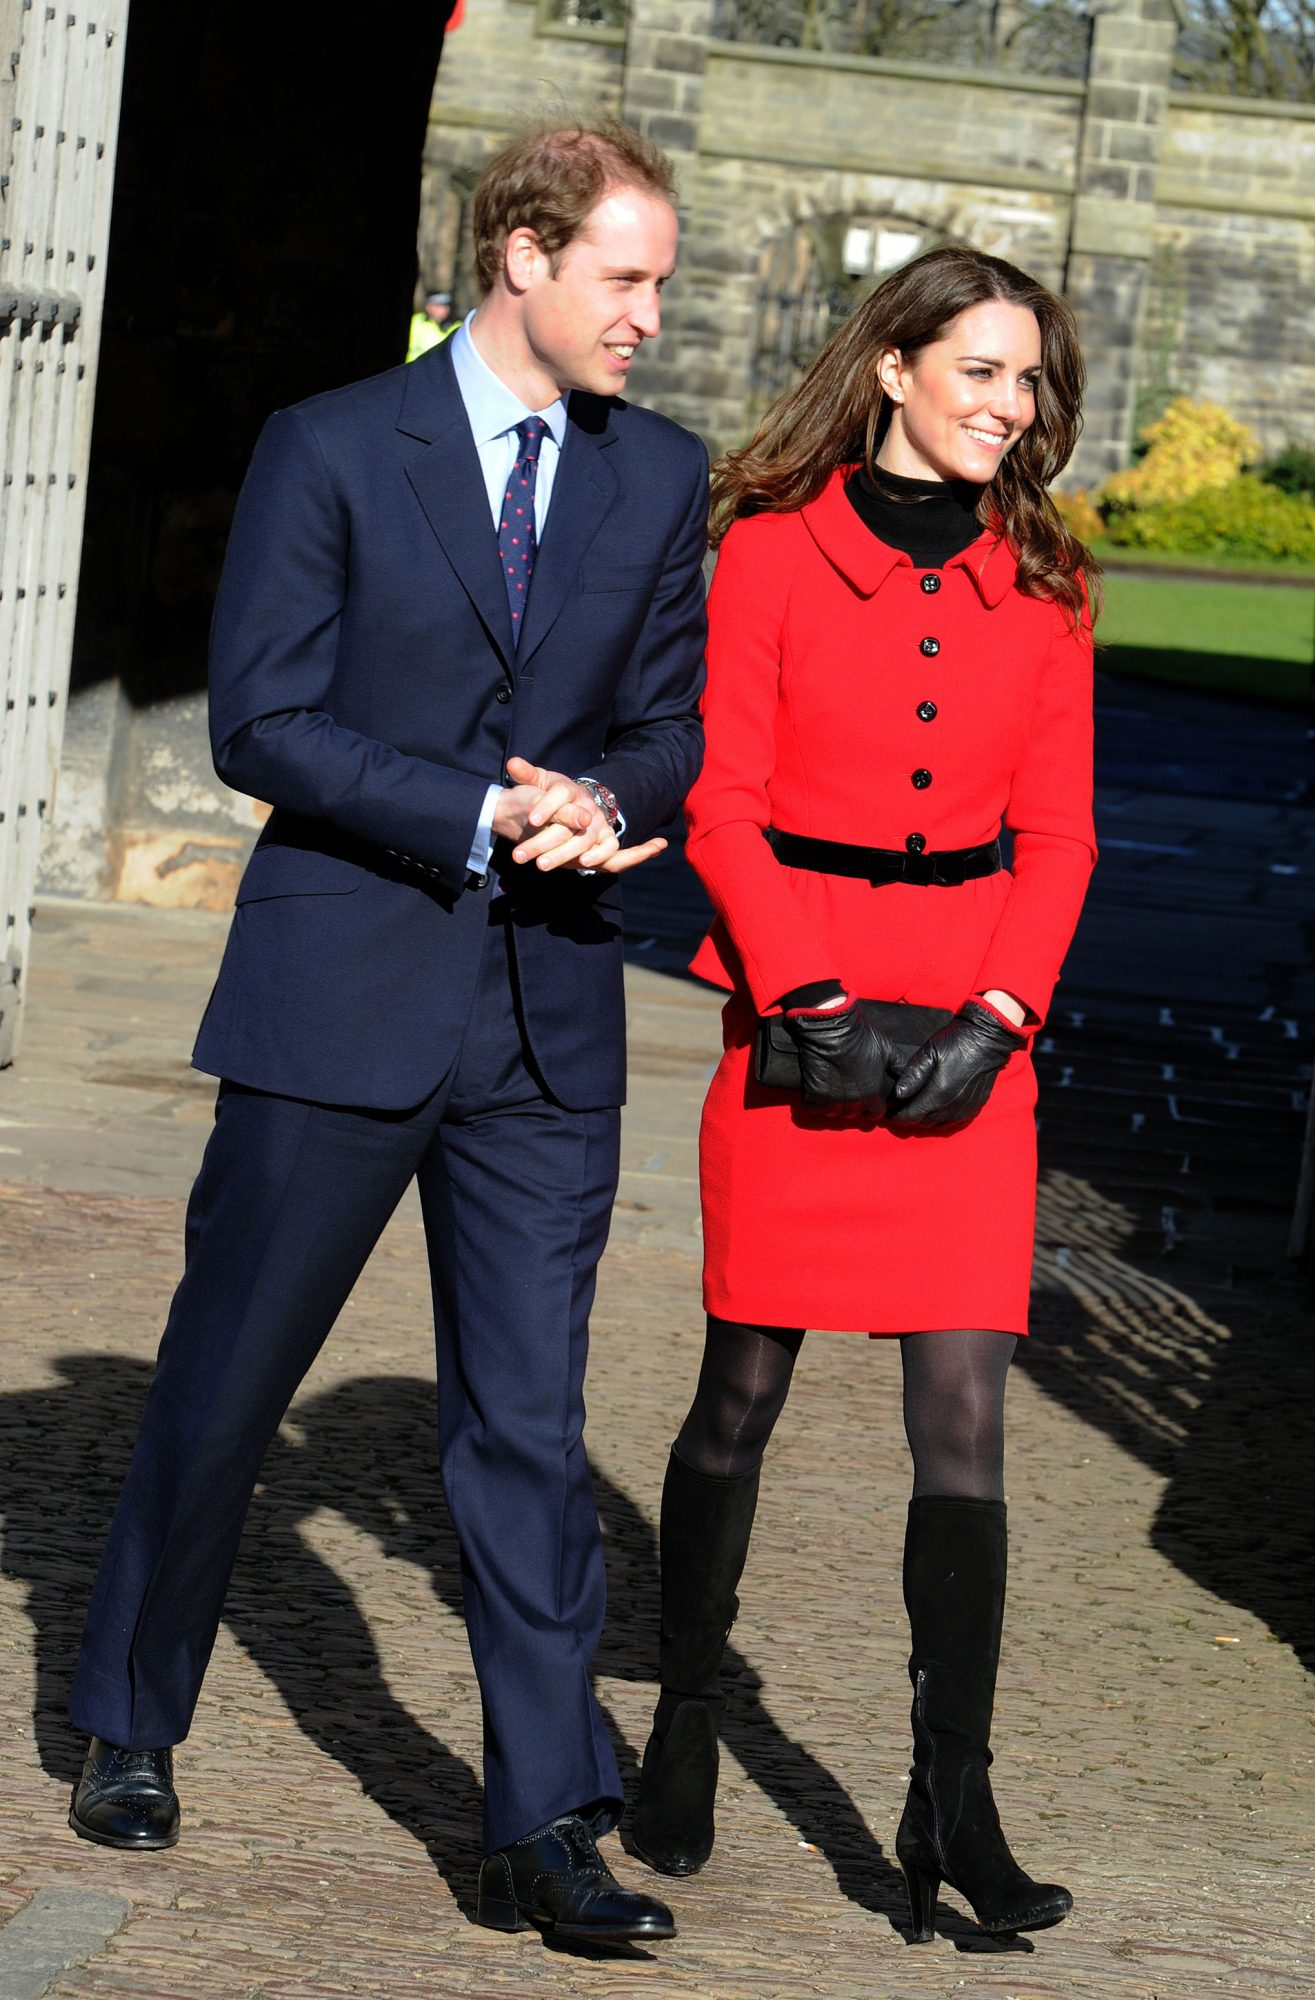 Prince Willliam and Kate Middleton return to the University of St Andrews to launch a fundraising campaign on February 25, 2011 in St Andrews, Scotland.